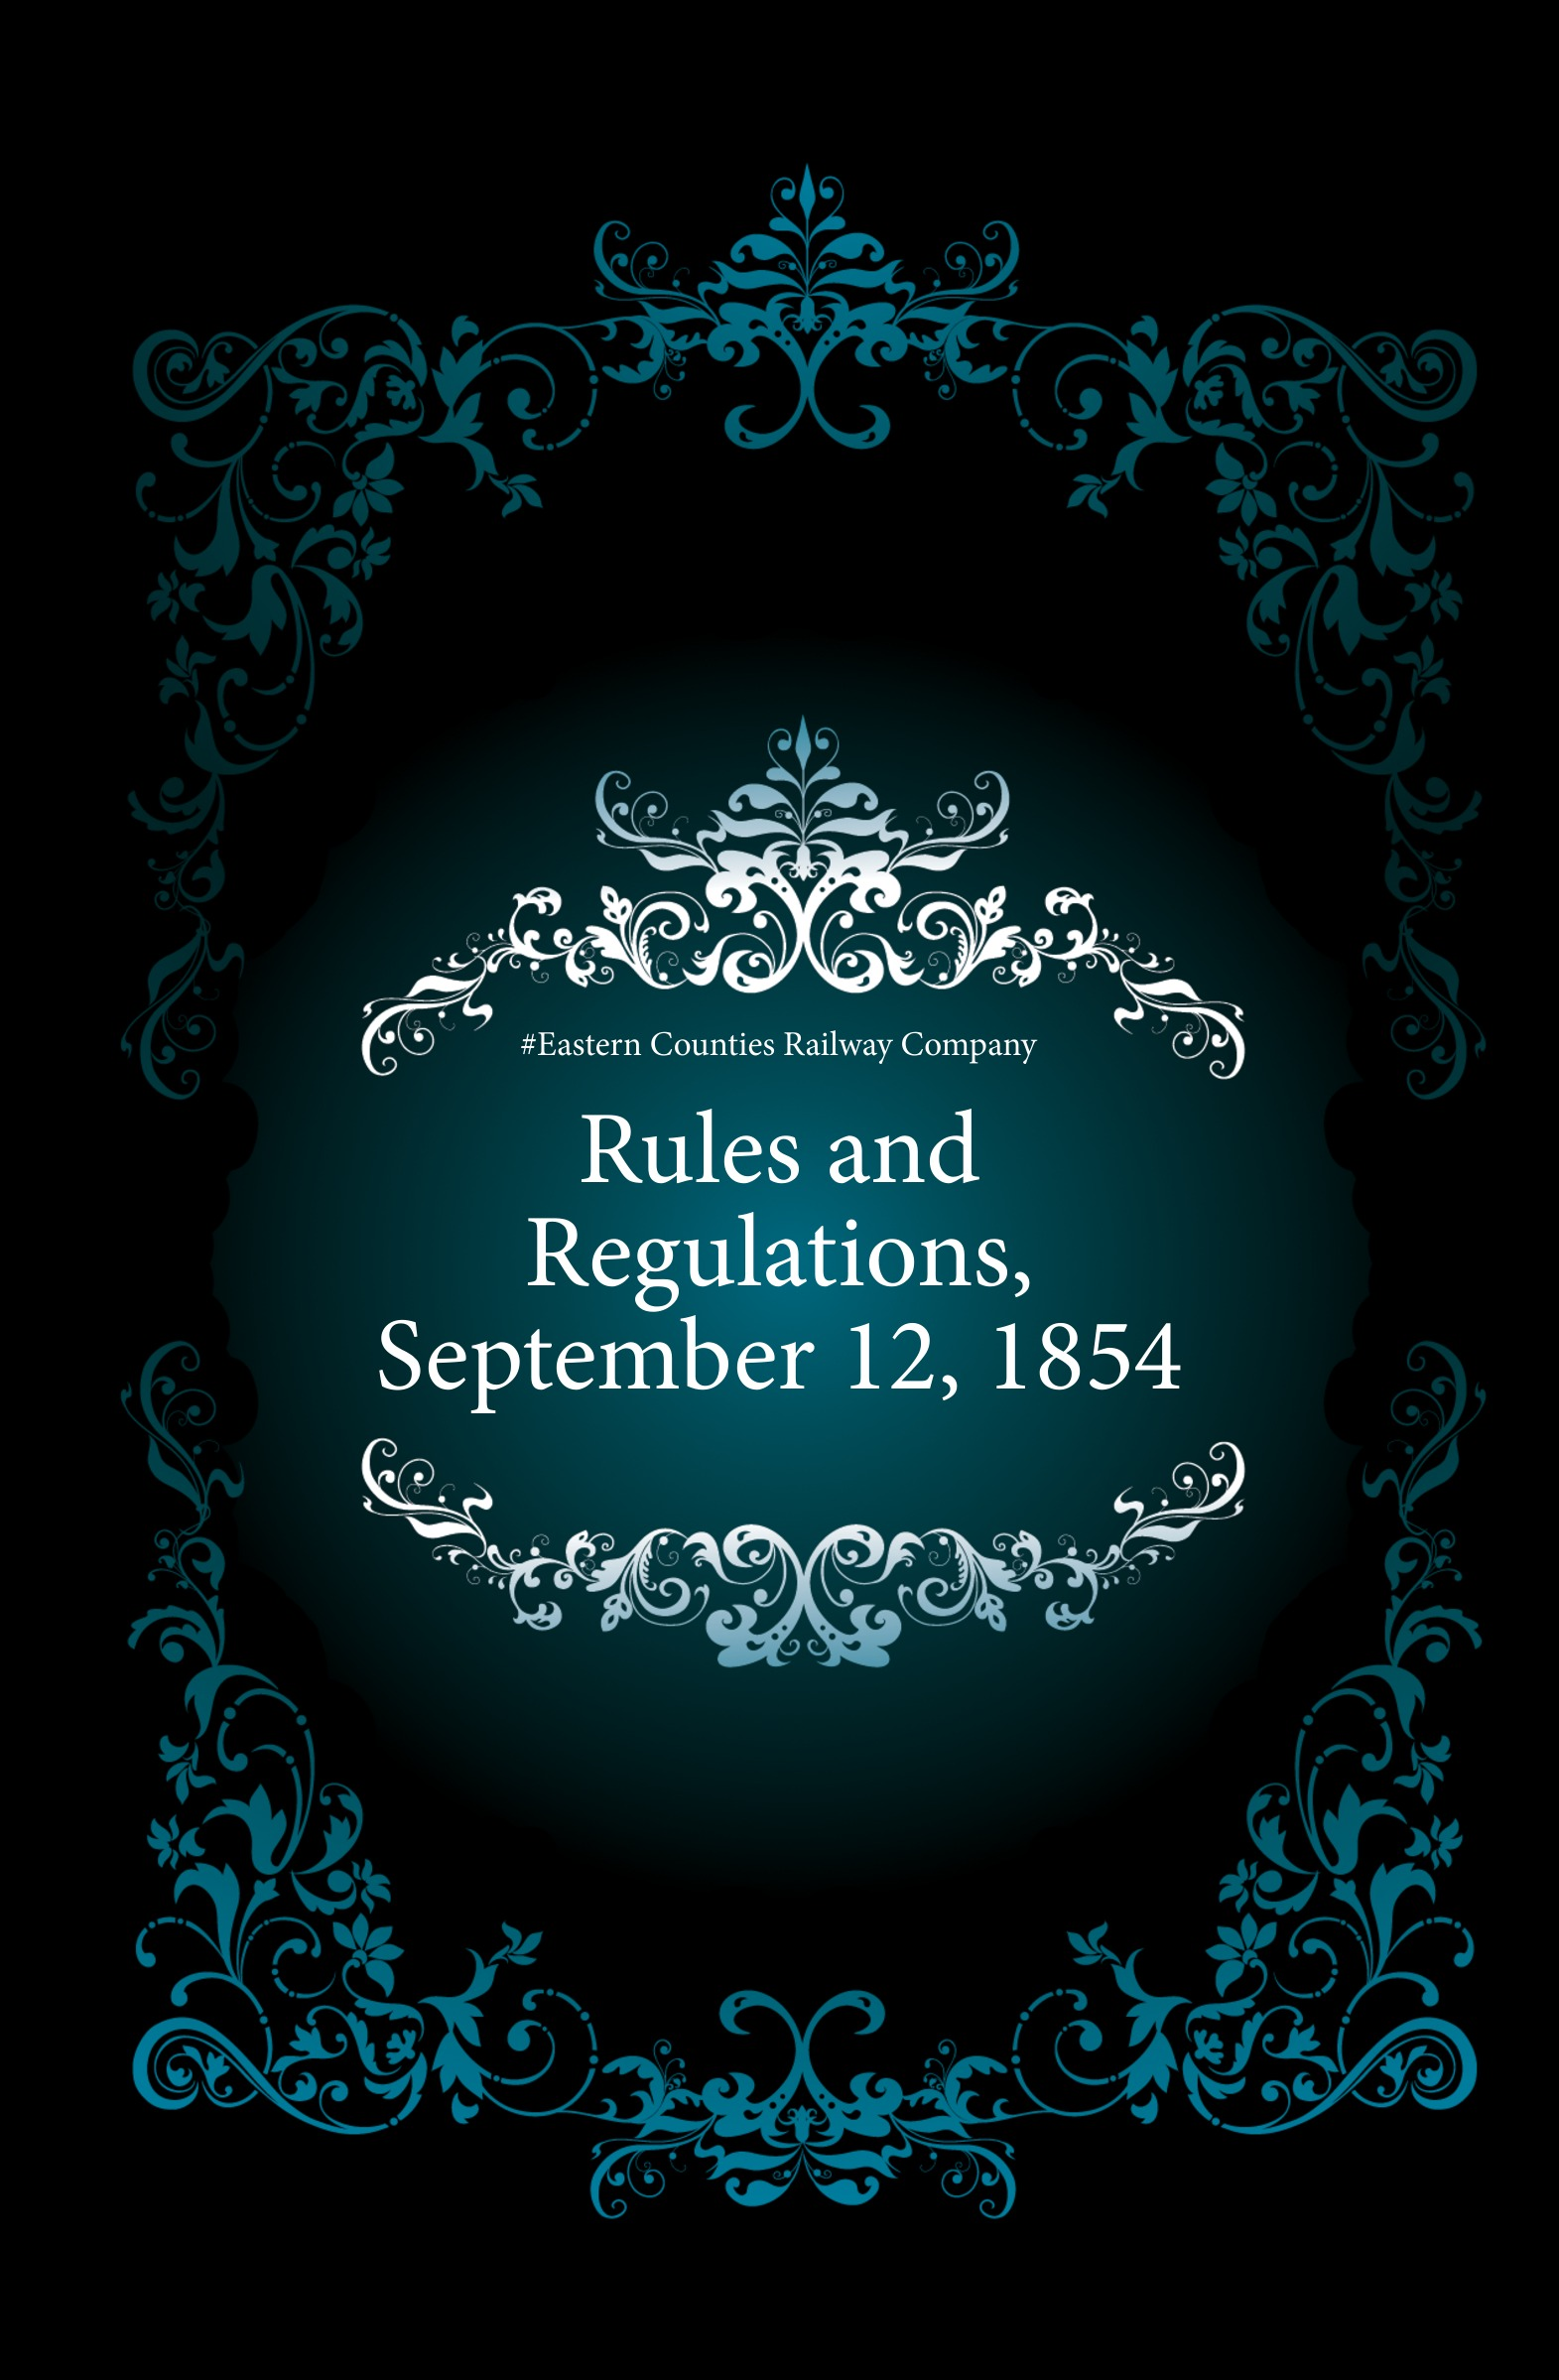 лучшая цена Eastern Counties Railway Company Rules and Regulations, September 12, 1854